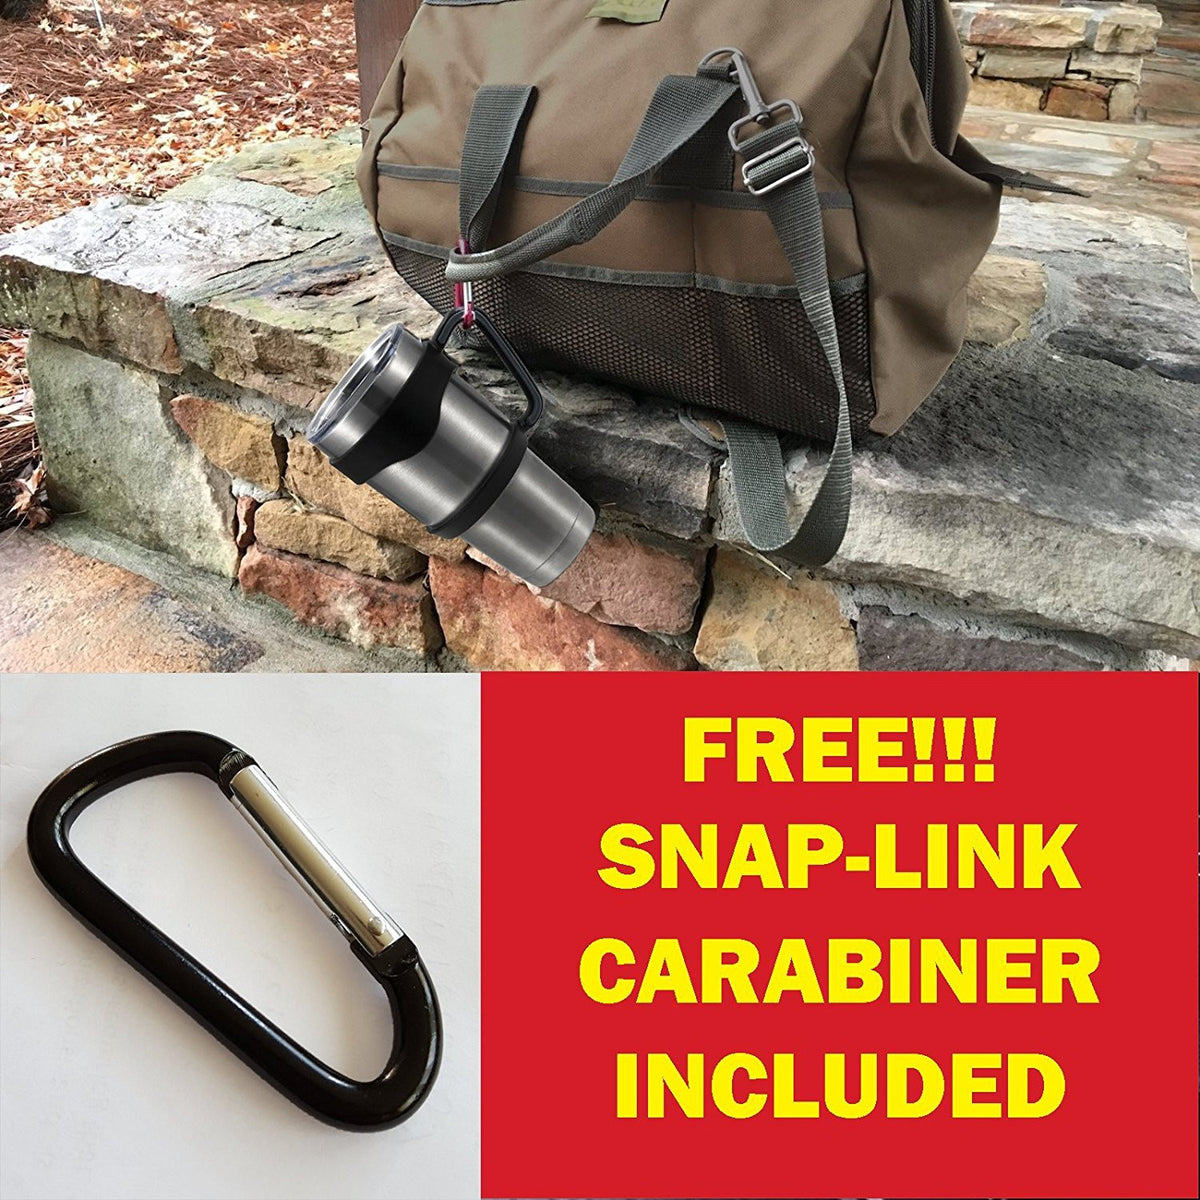 GetiGrip Anti-Slip Tumbler Handle + Free Carabiner for Ozark Trail, YETI, RTIC, & most 30oz Tumblers